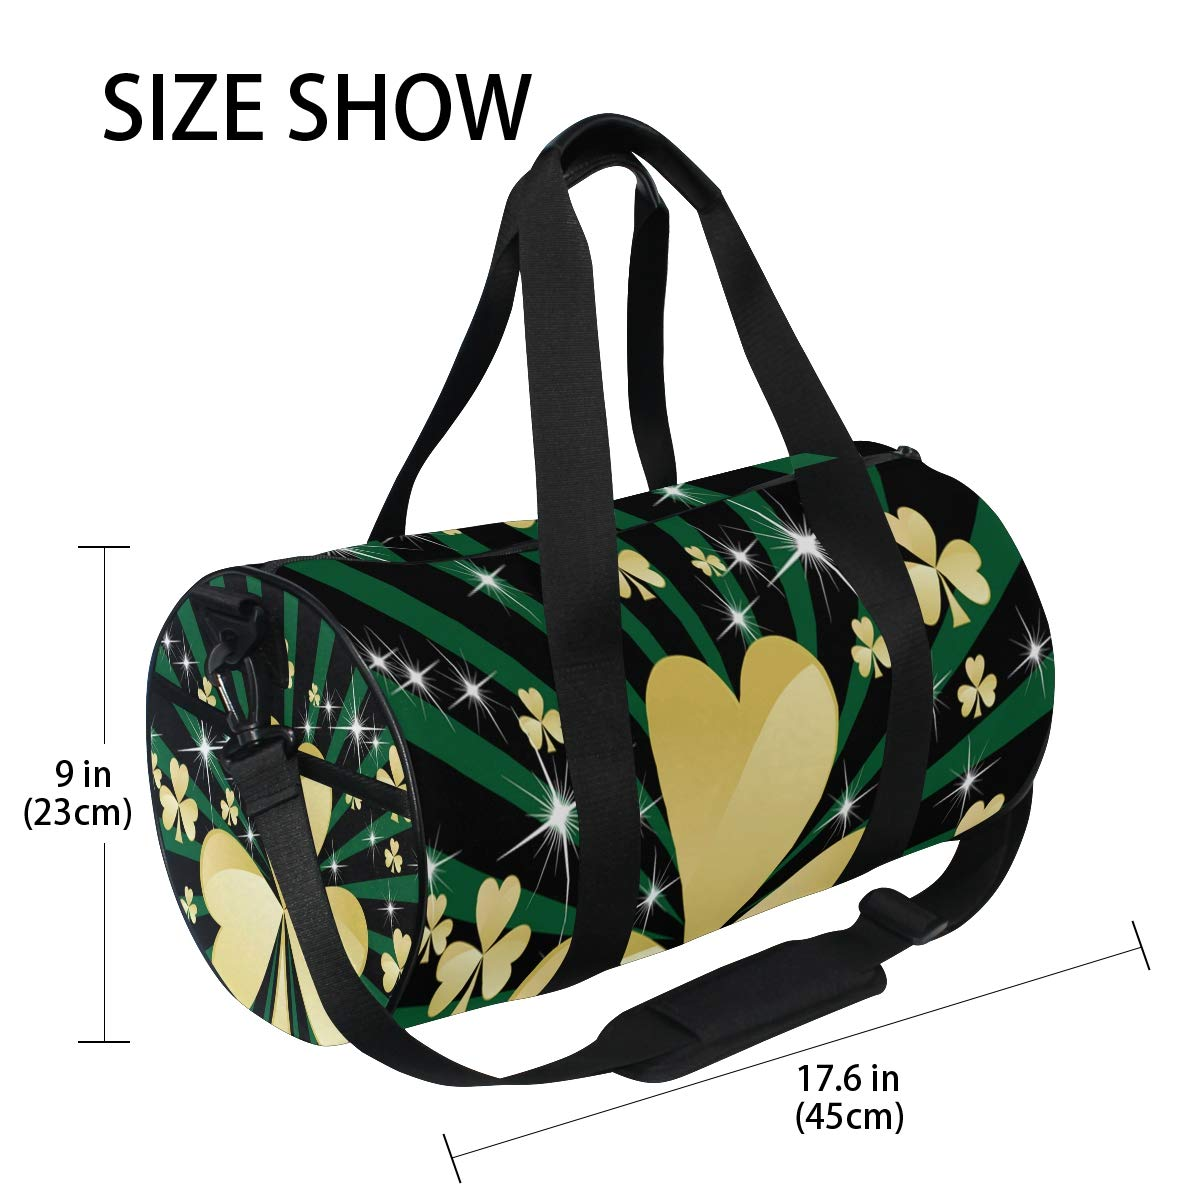 Sports Gym Duffel Barrel Bag Green Rays Golden Shamrock Travel Luggage Handbag for Men Women